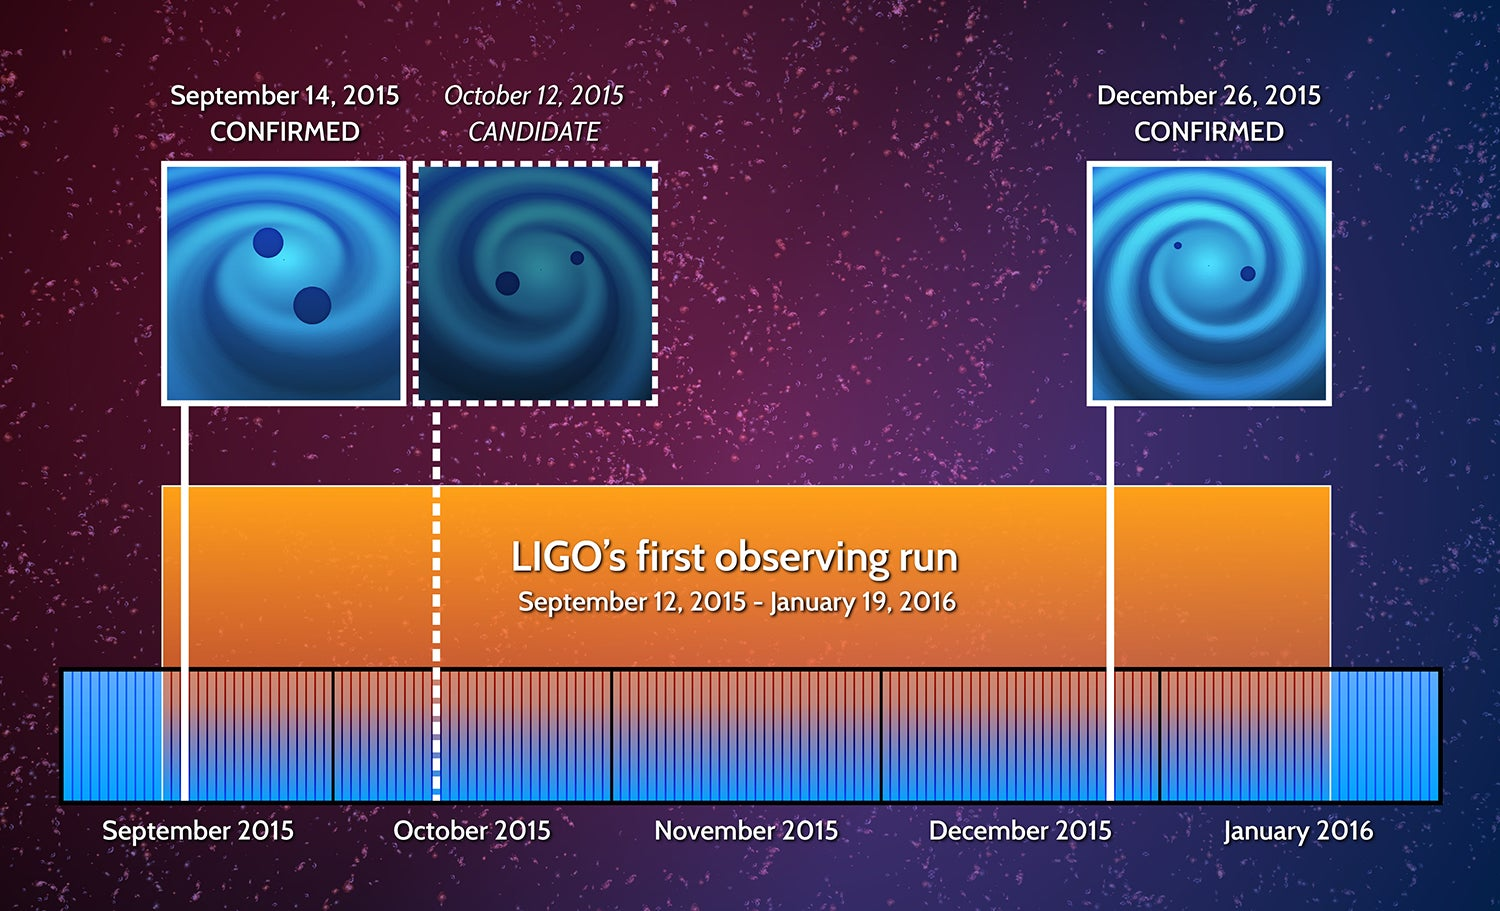 Black holes are colliding: Scientists confirm more ripples in spacetime